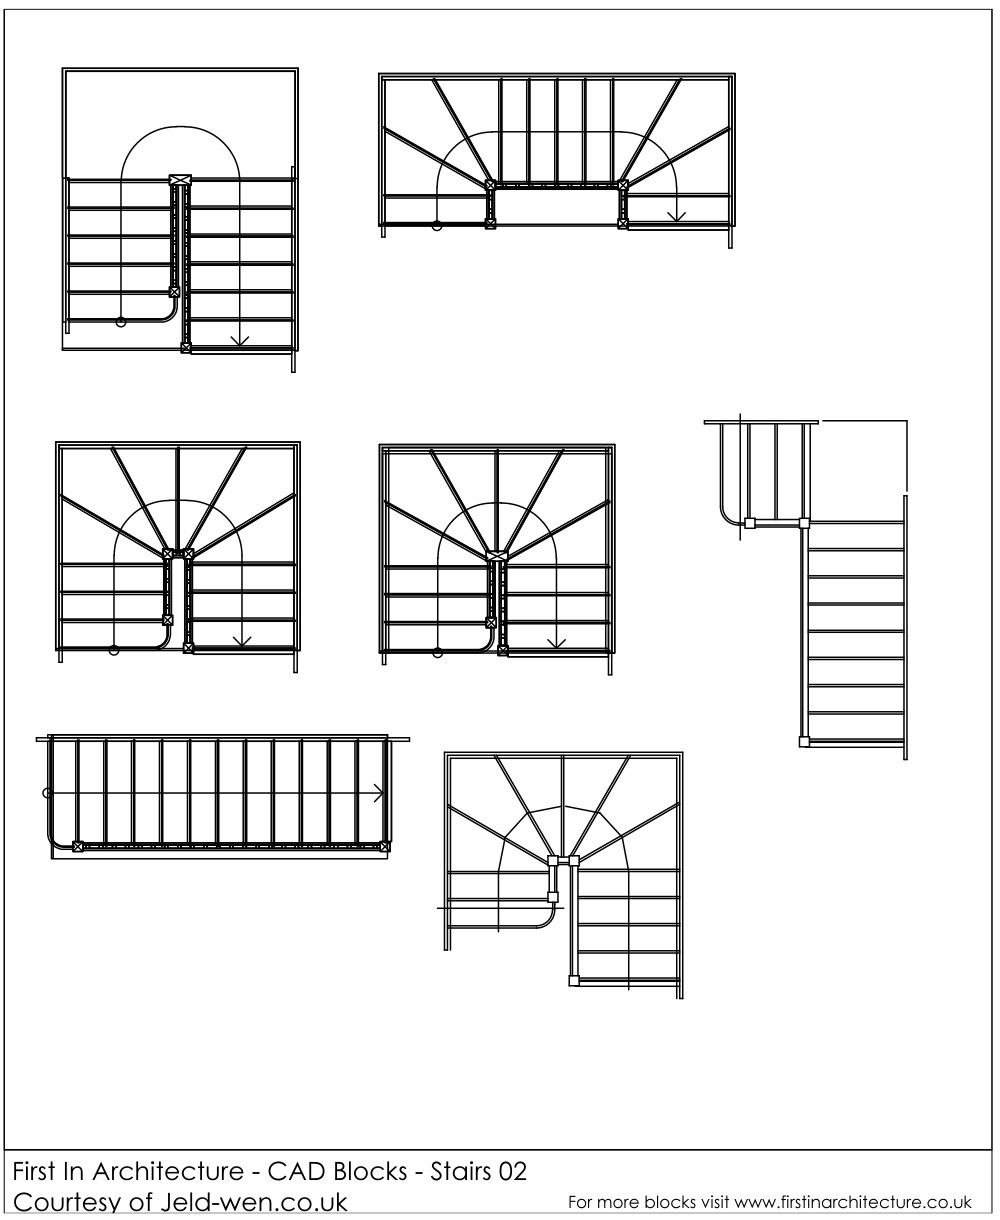 Stone Work In Elevation Symbol : Free cad blocks stairs first in architecture